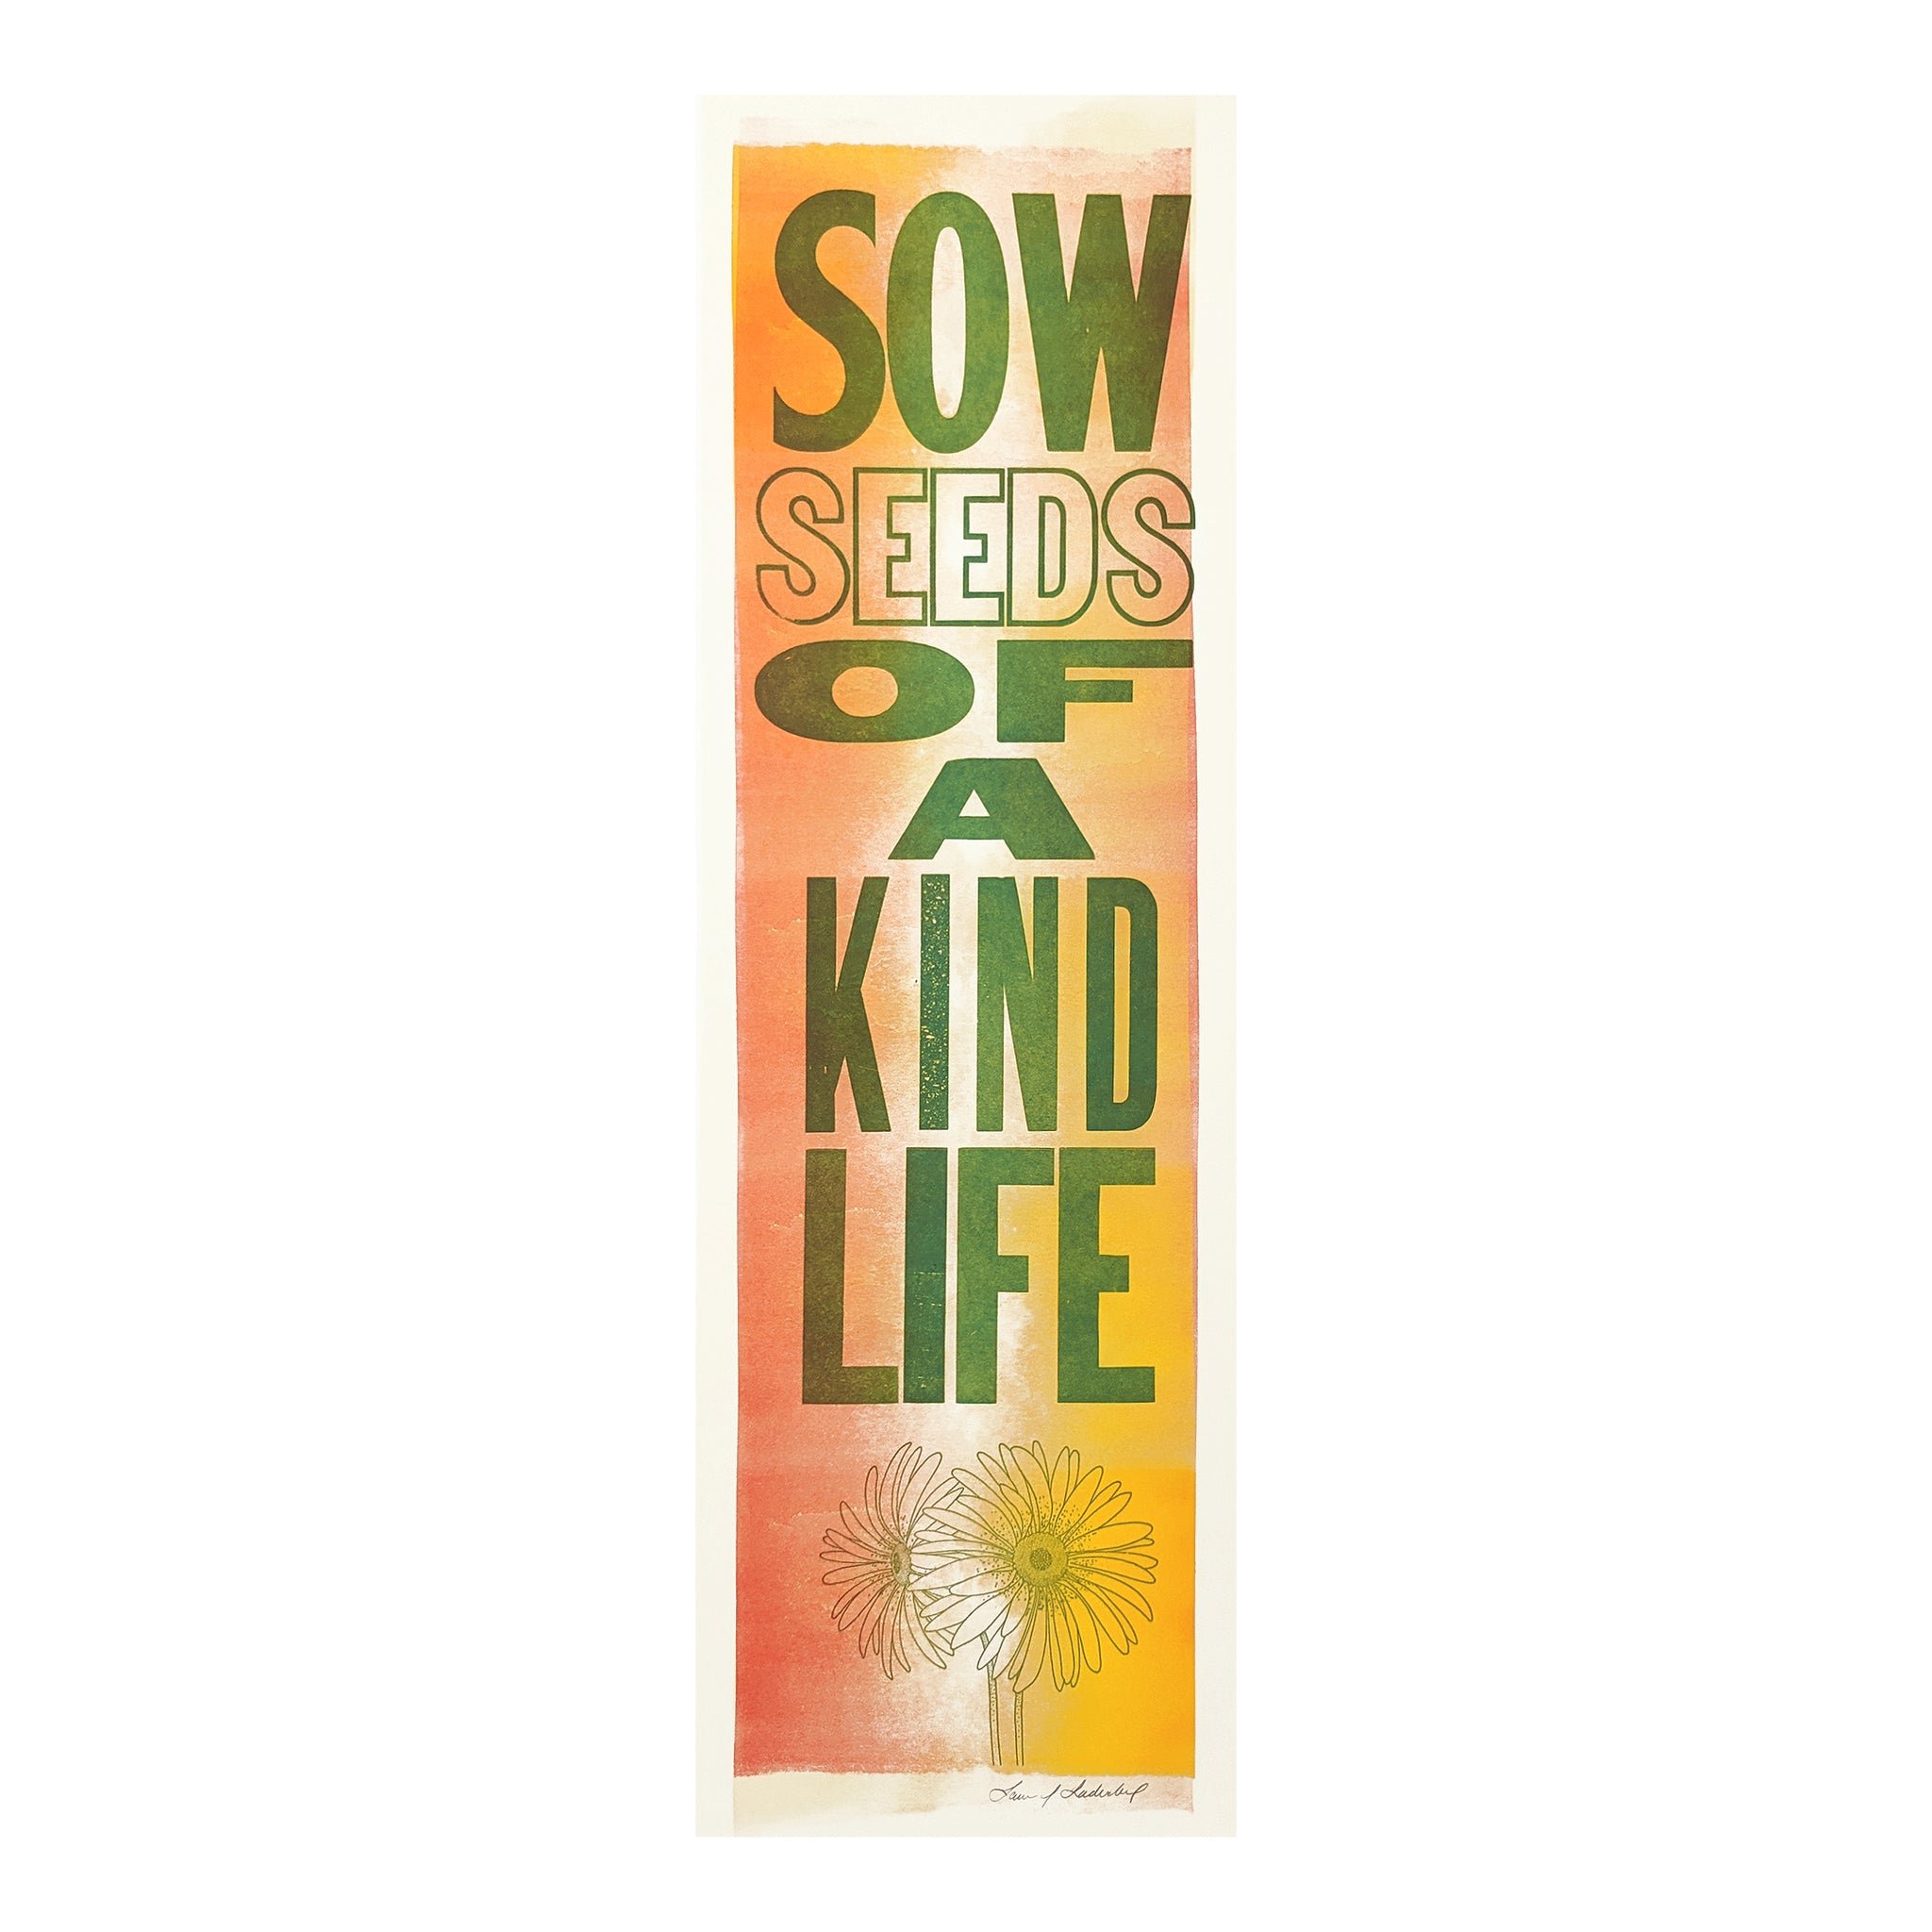 Sow Seeds Of A Kind Life